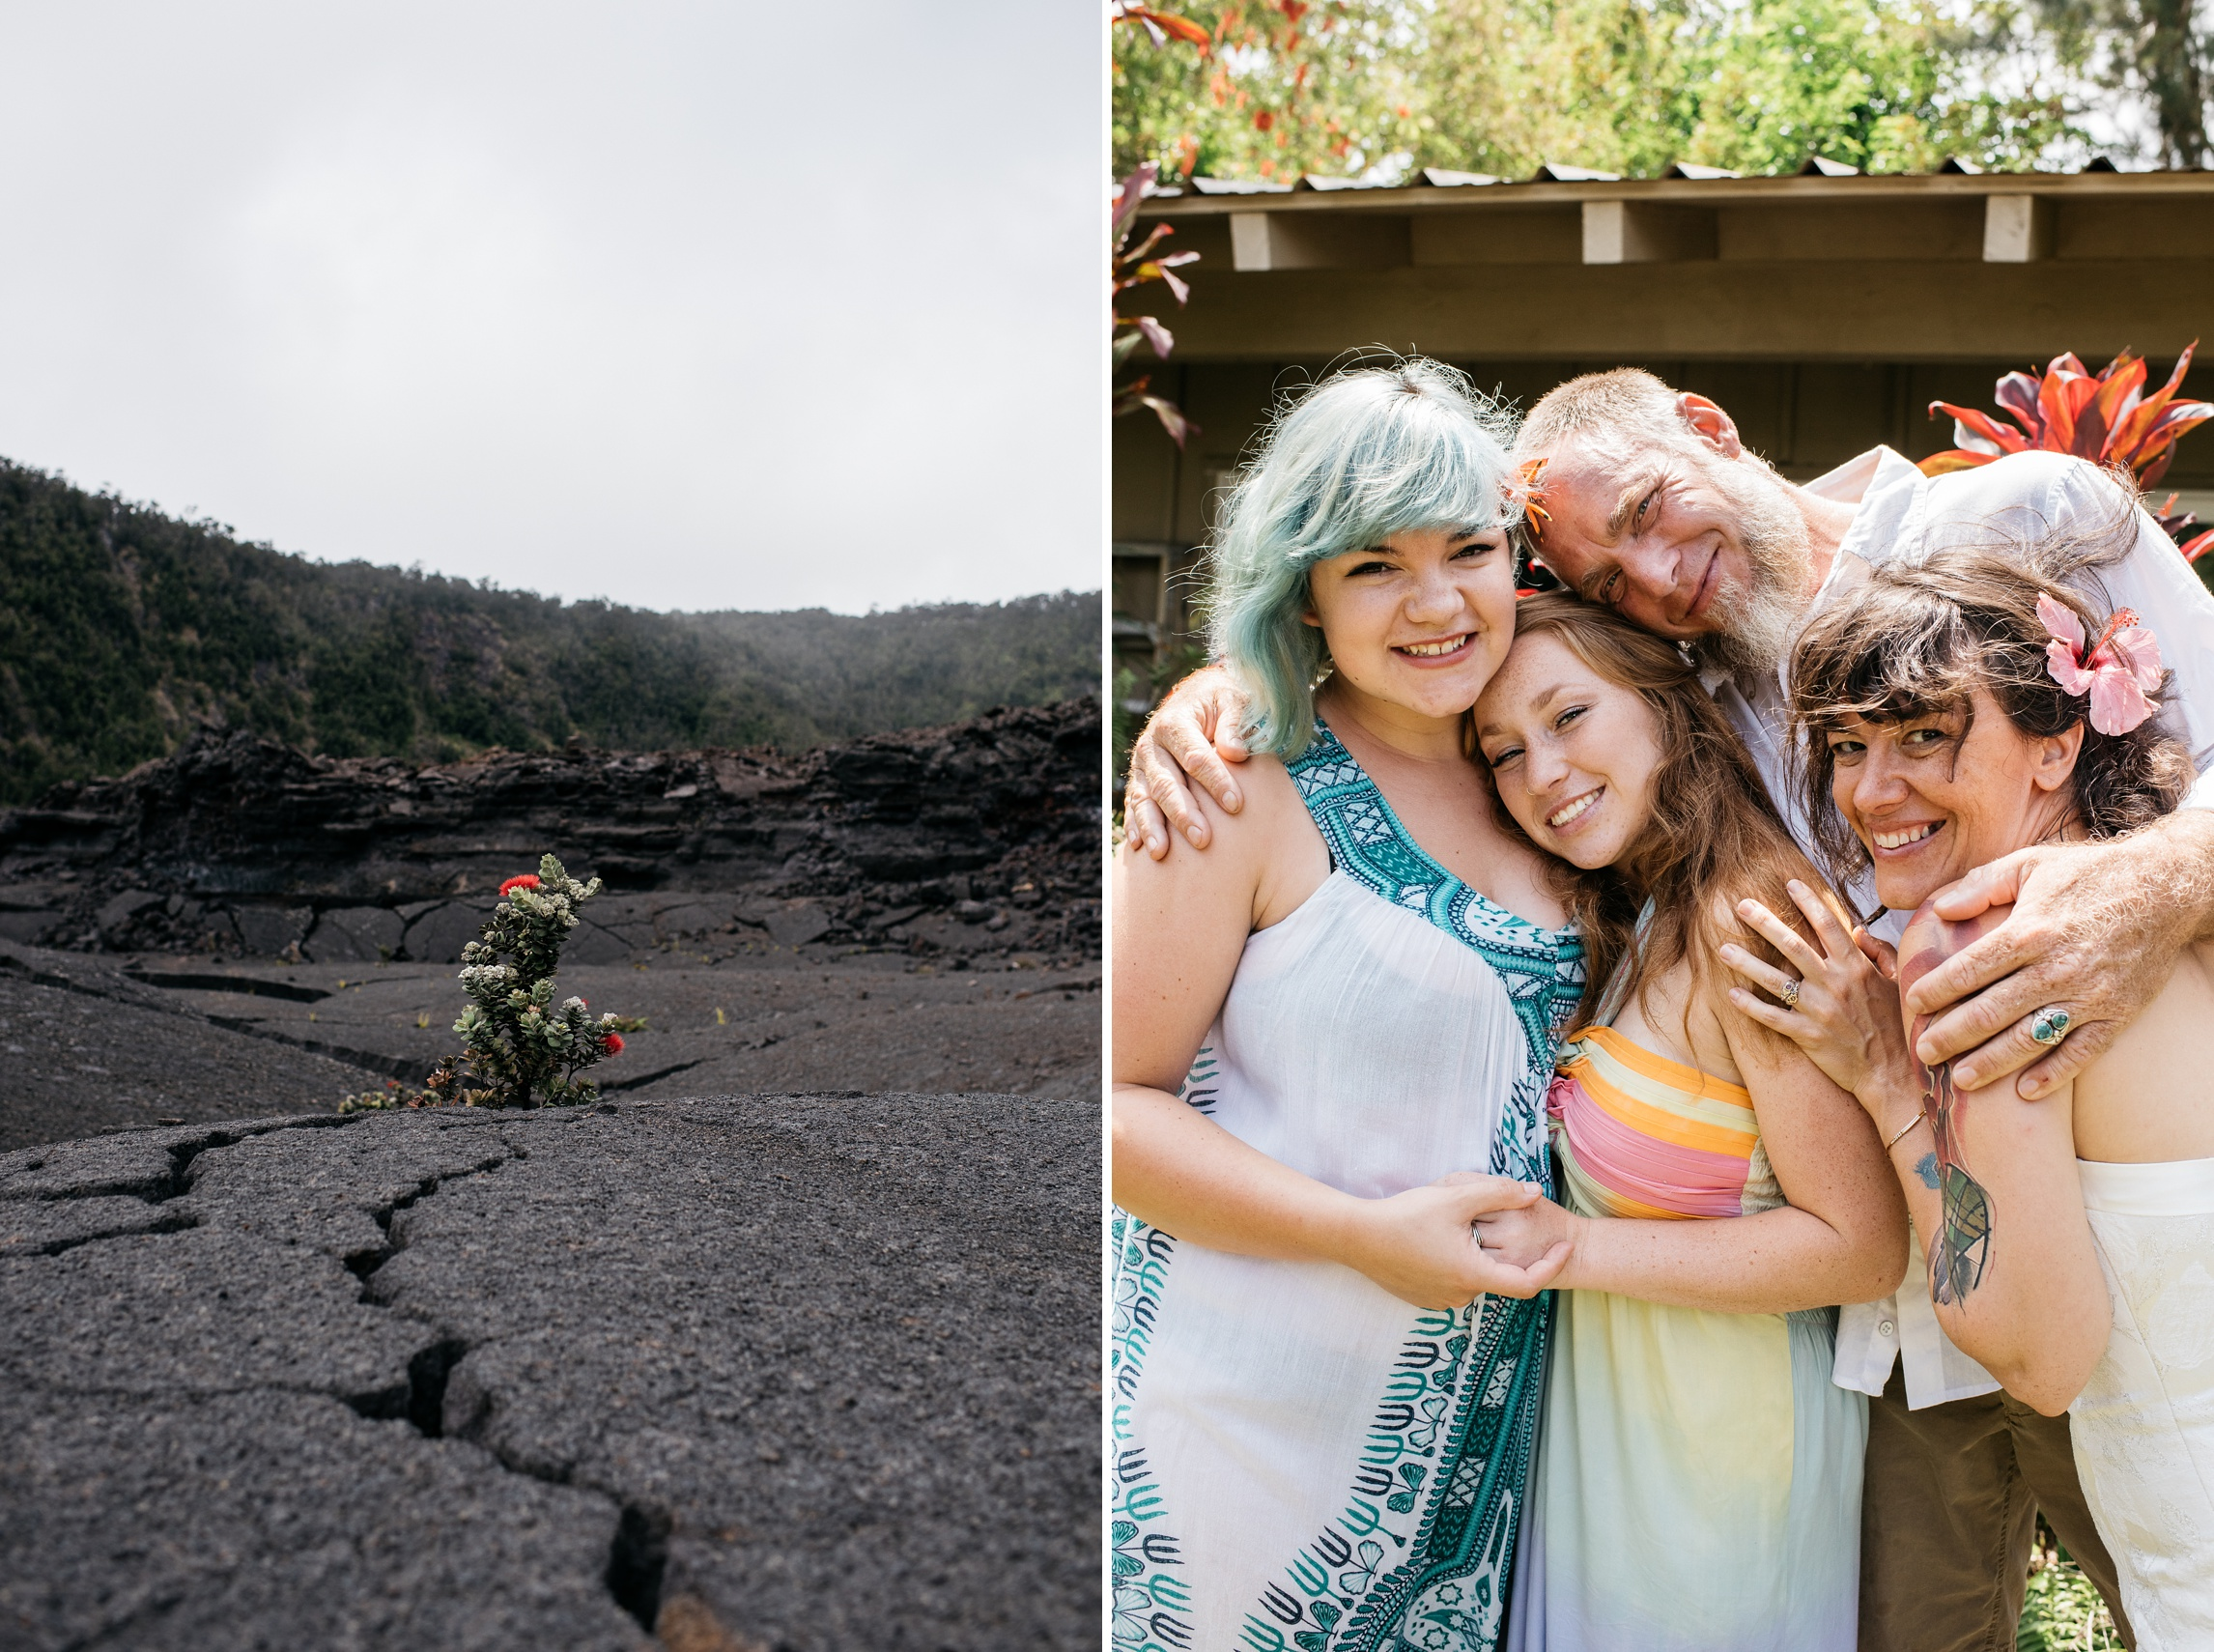 A flower grows from lava rock on the Kilauea Iki trail and family portraits done near Naalehu, Hawaii. Anniversary portraits by Sonja Salzburg of Sonja K Photography.